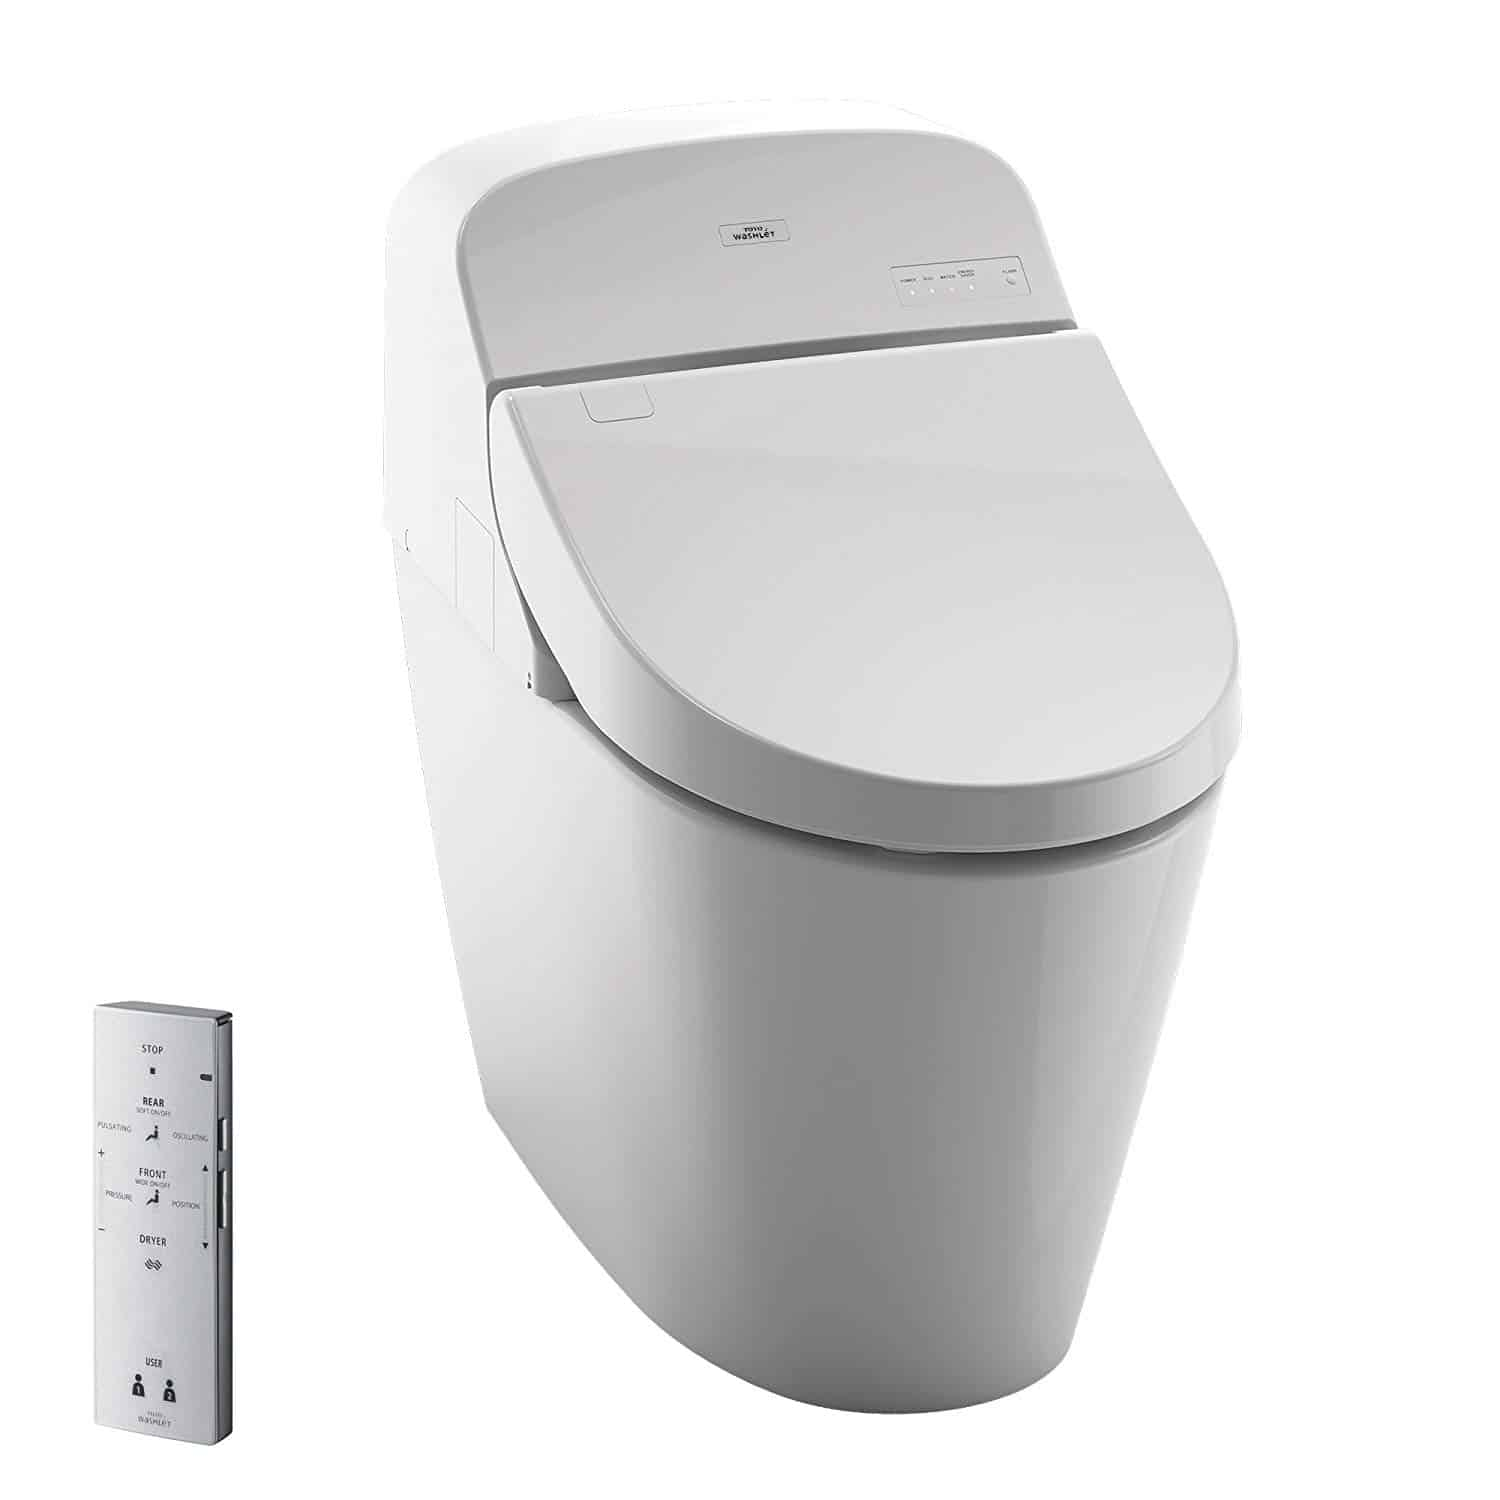 Toto Washlet G400 Integrated Toilet Review